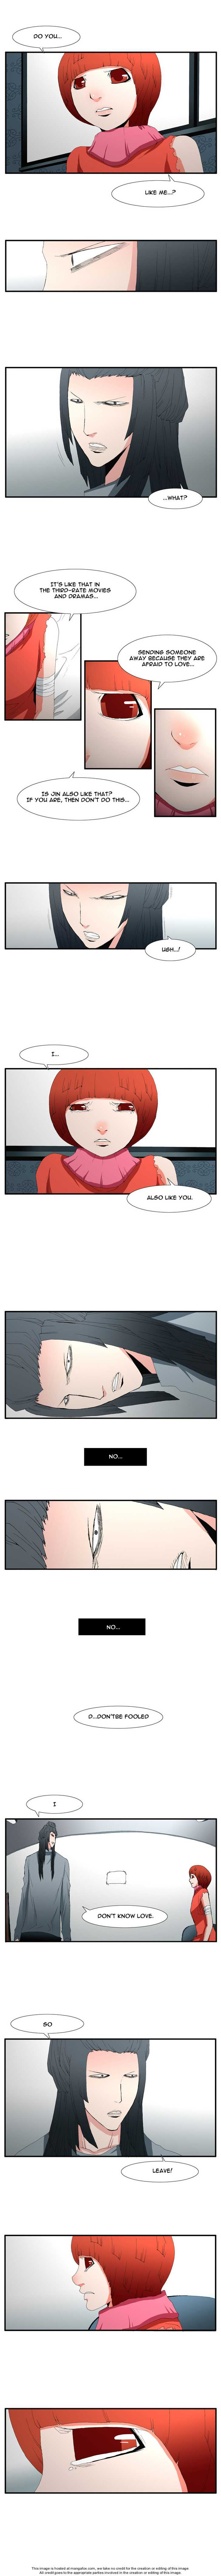 Trace 21 Page 2